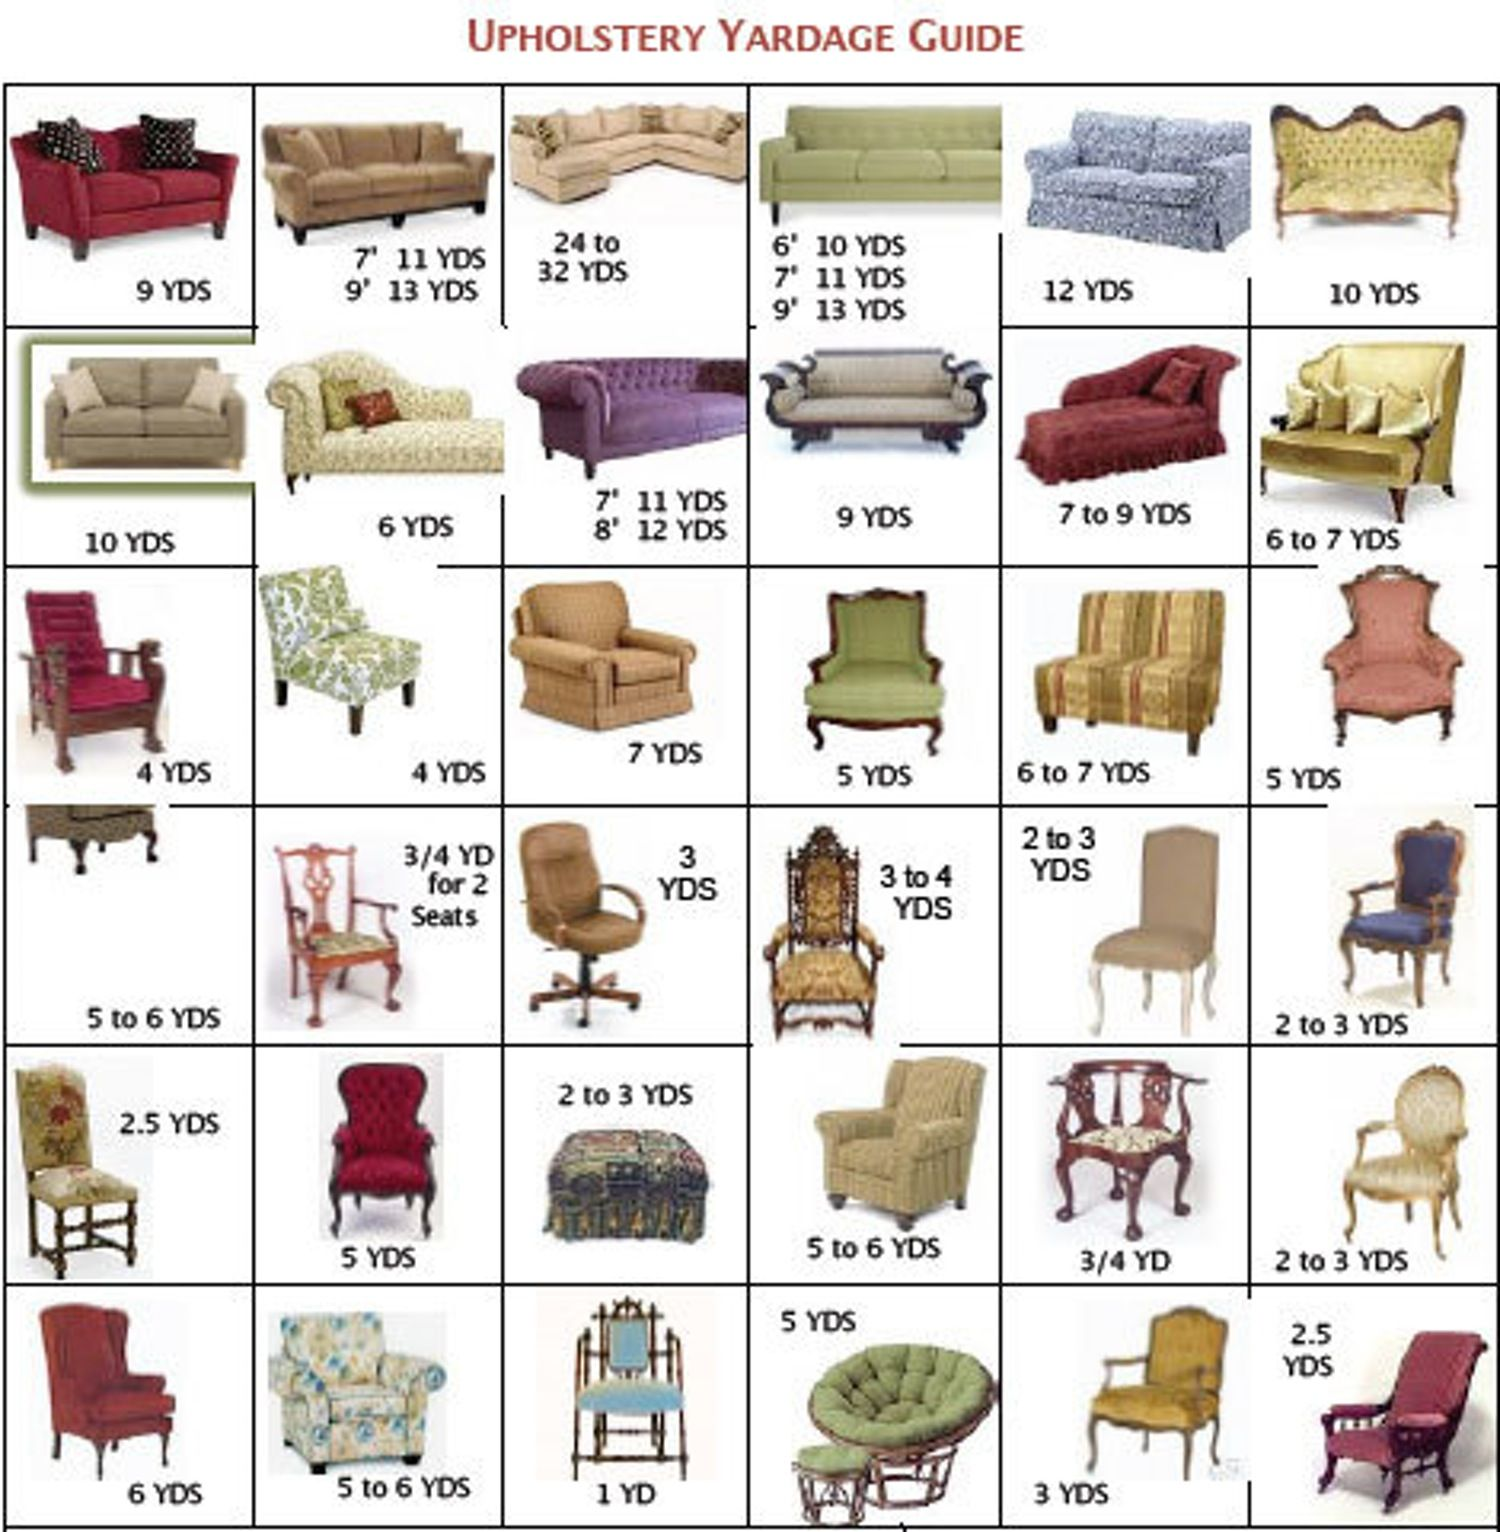 How Much Fabric Should I Buy — Upholstery Yardage Guides